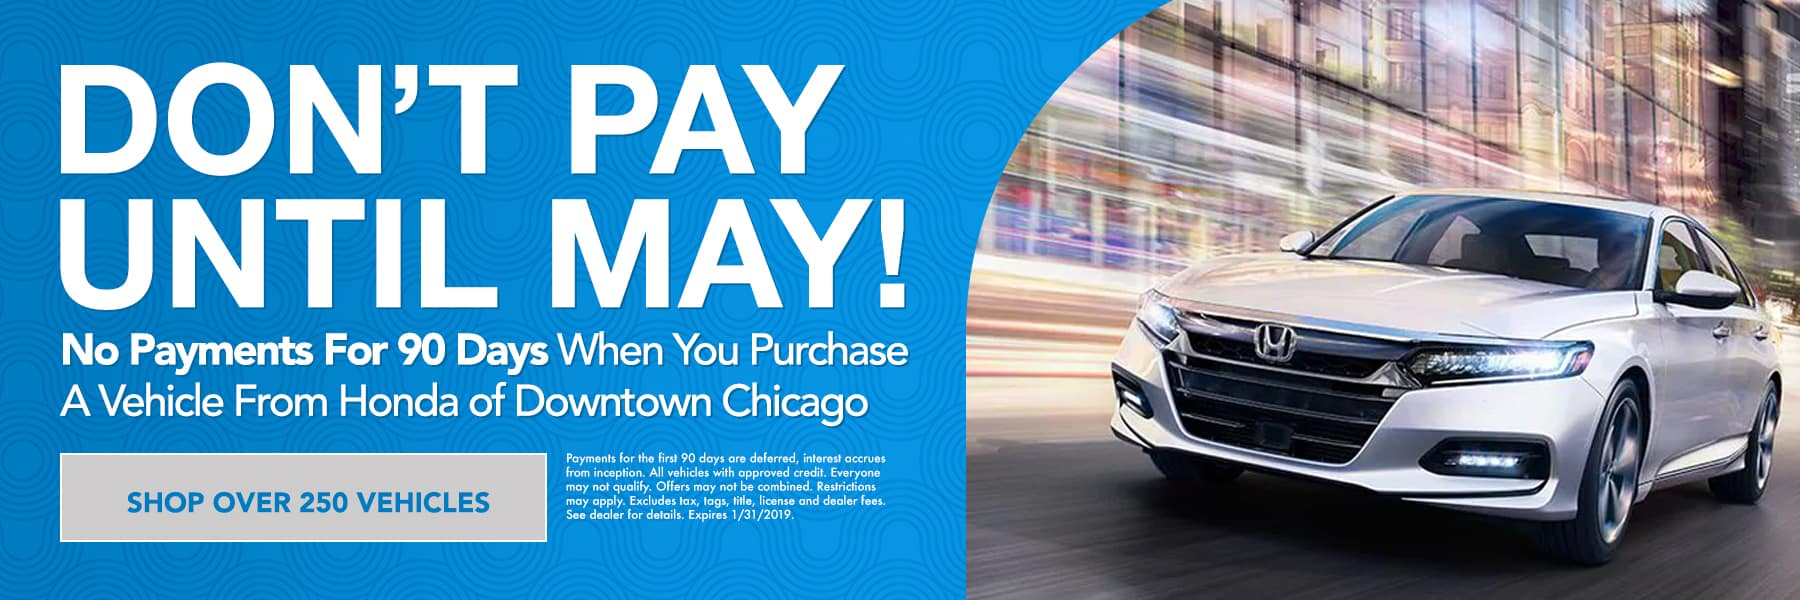 Honda Of Downtown Chicago New And Pre Owned Car Dealer Service 1997 Crv Parts Oem Dont Pay Until May No Payments For 90 Days When You Purchase A